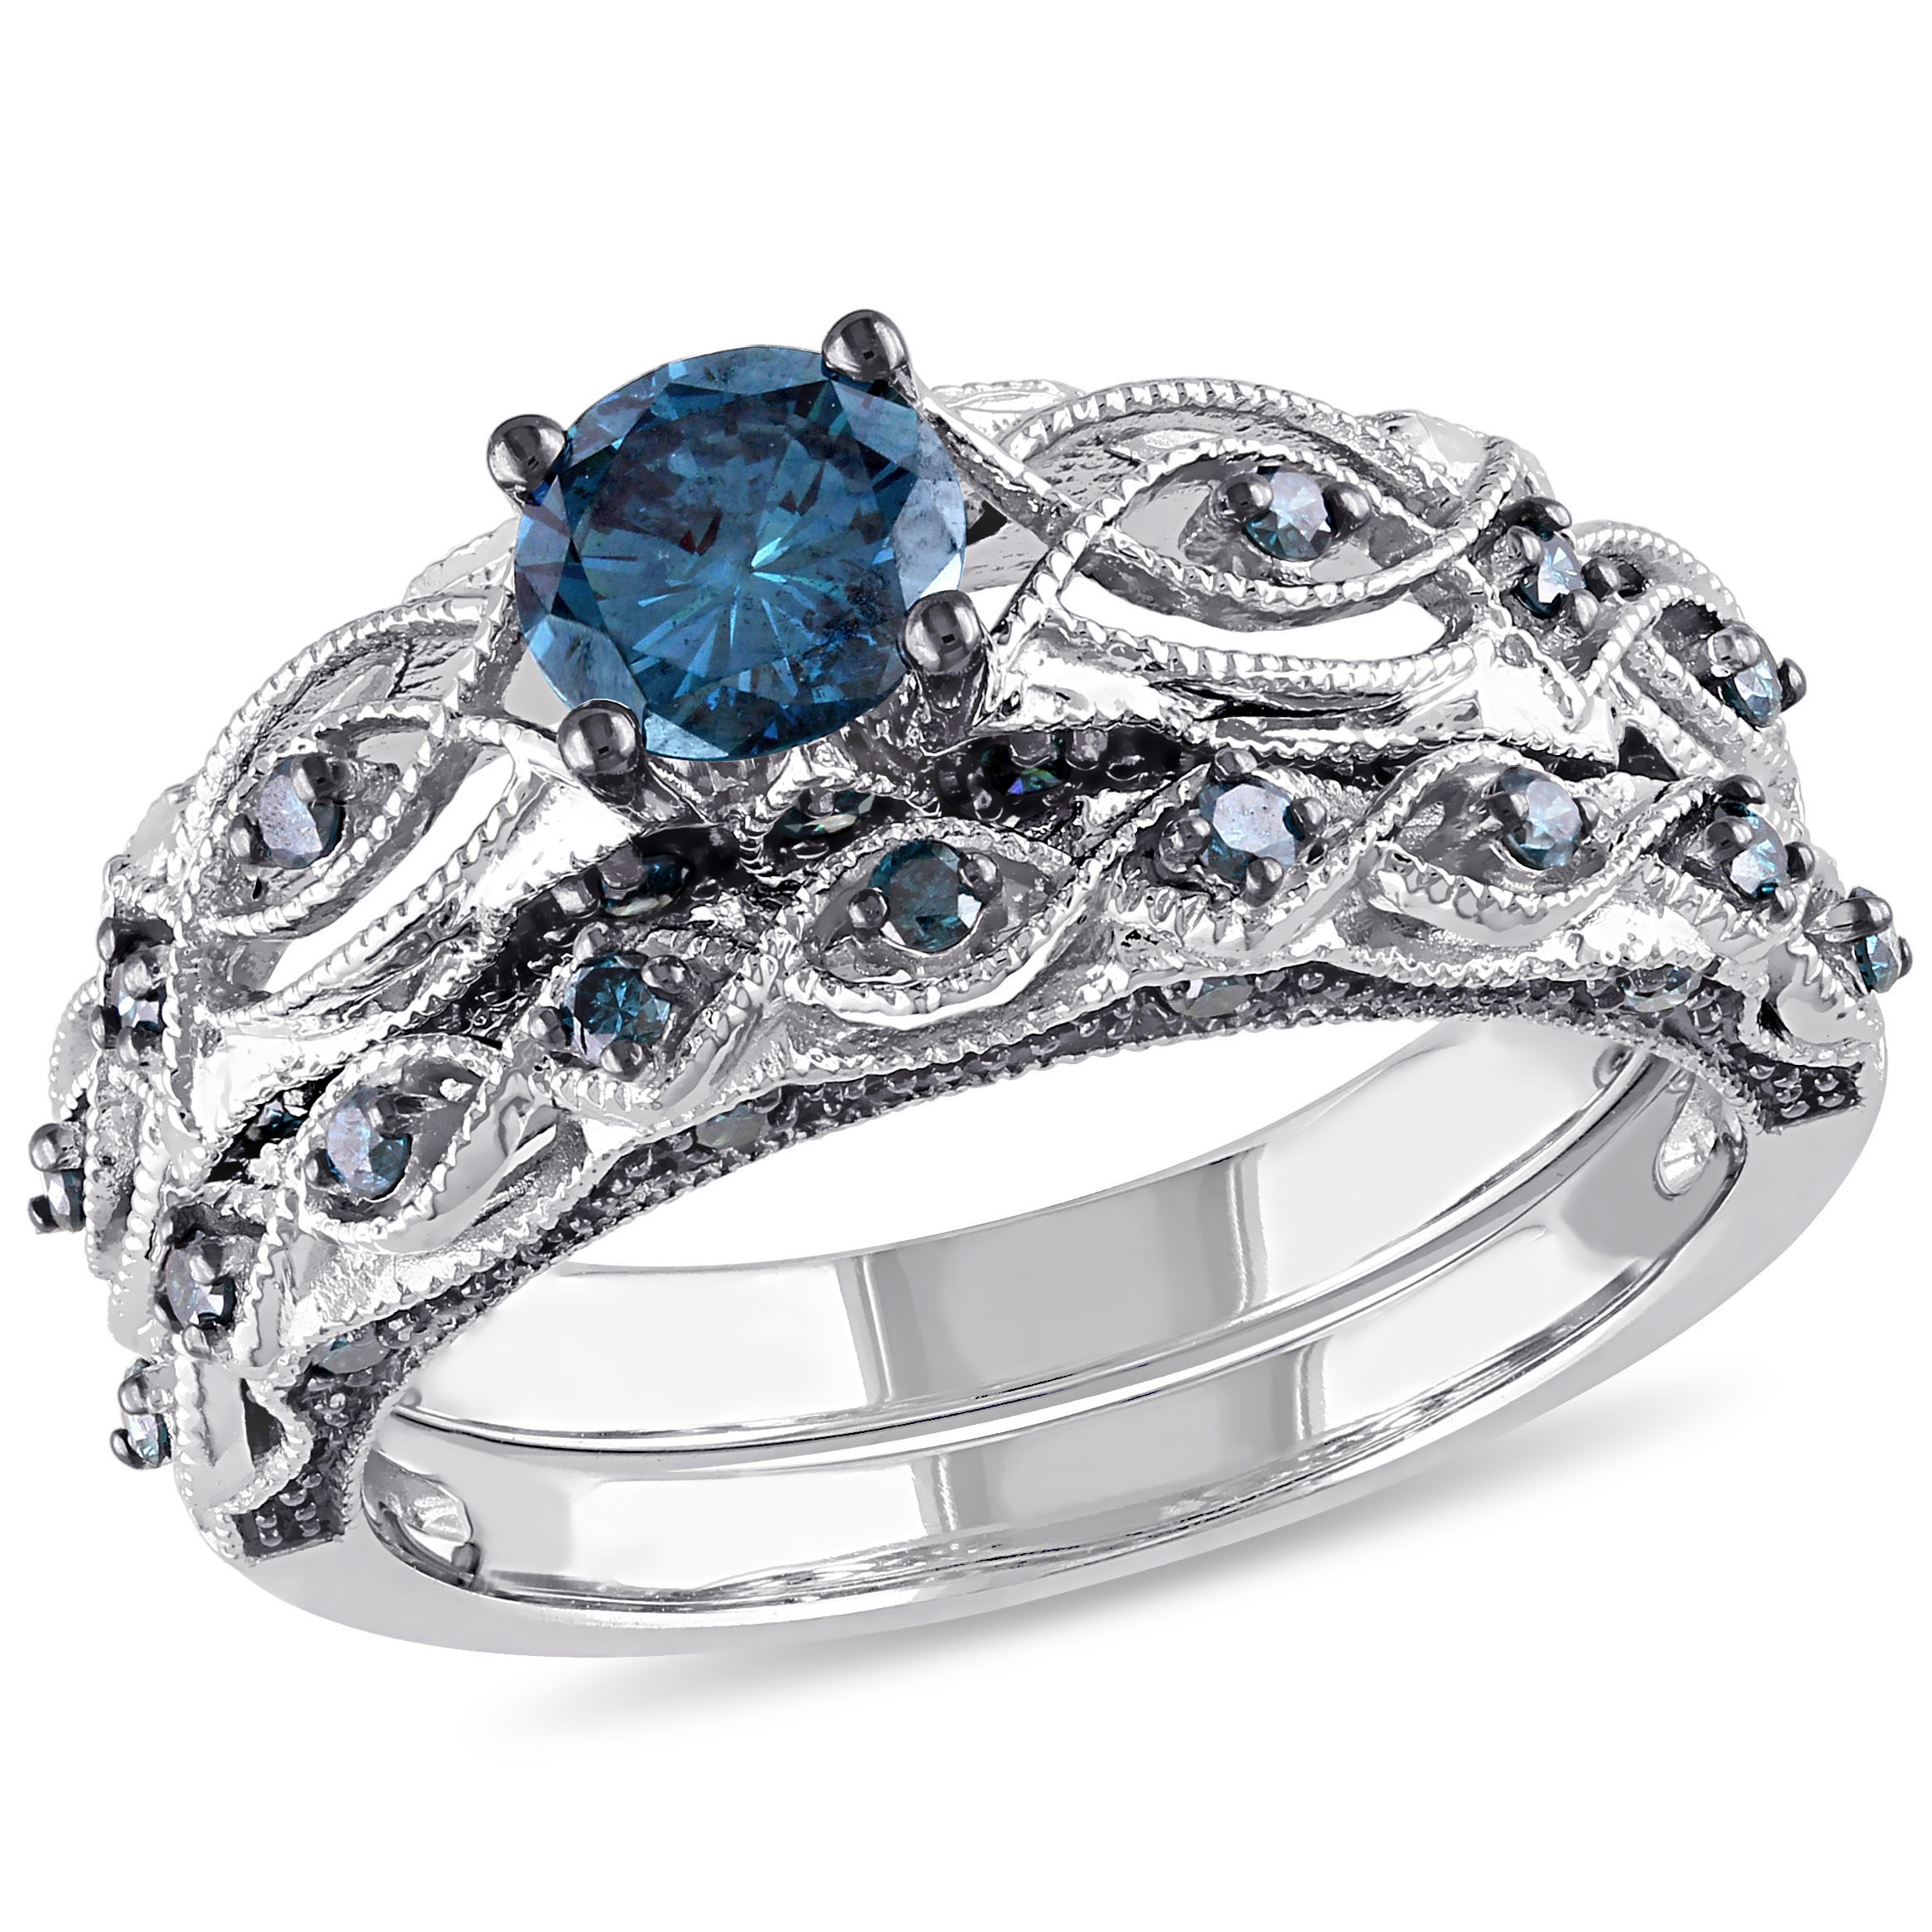 Tangelo 1 Carat T.W. Treated Blue Diamond 10kt White Gold Vintage Filigree Bridal Set by Delmar Manufacturing LLC